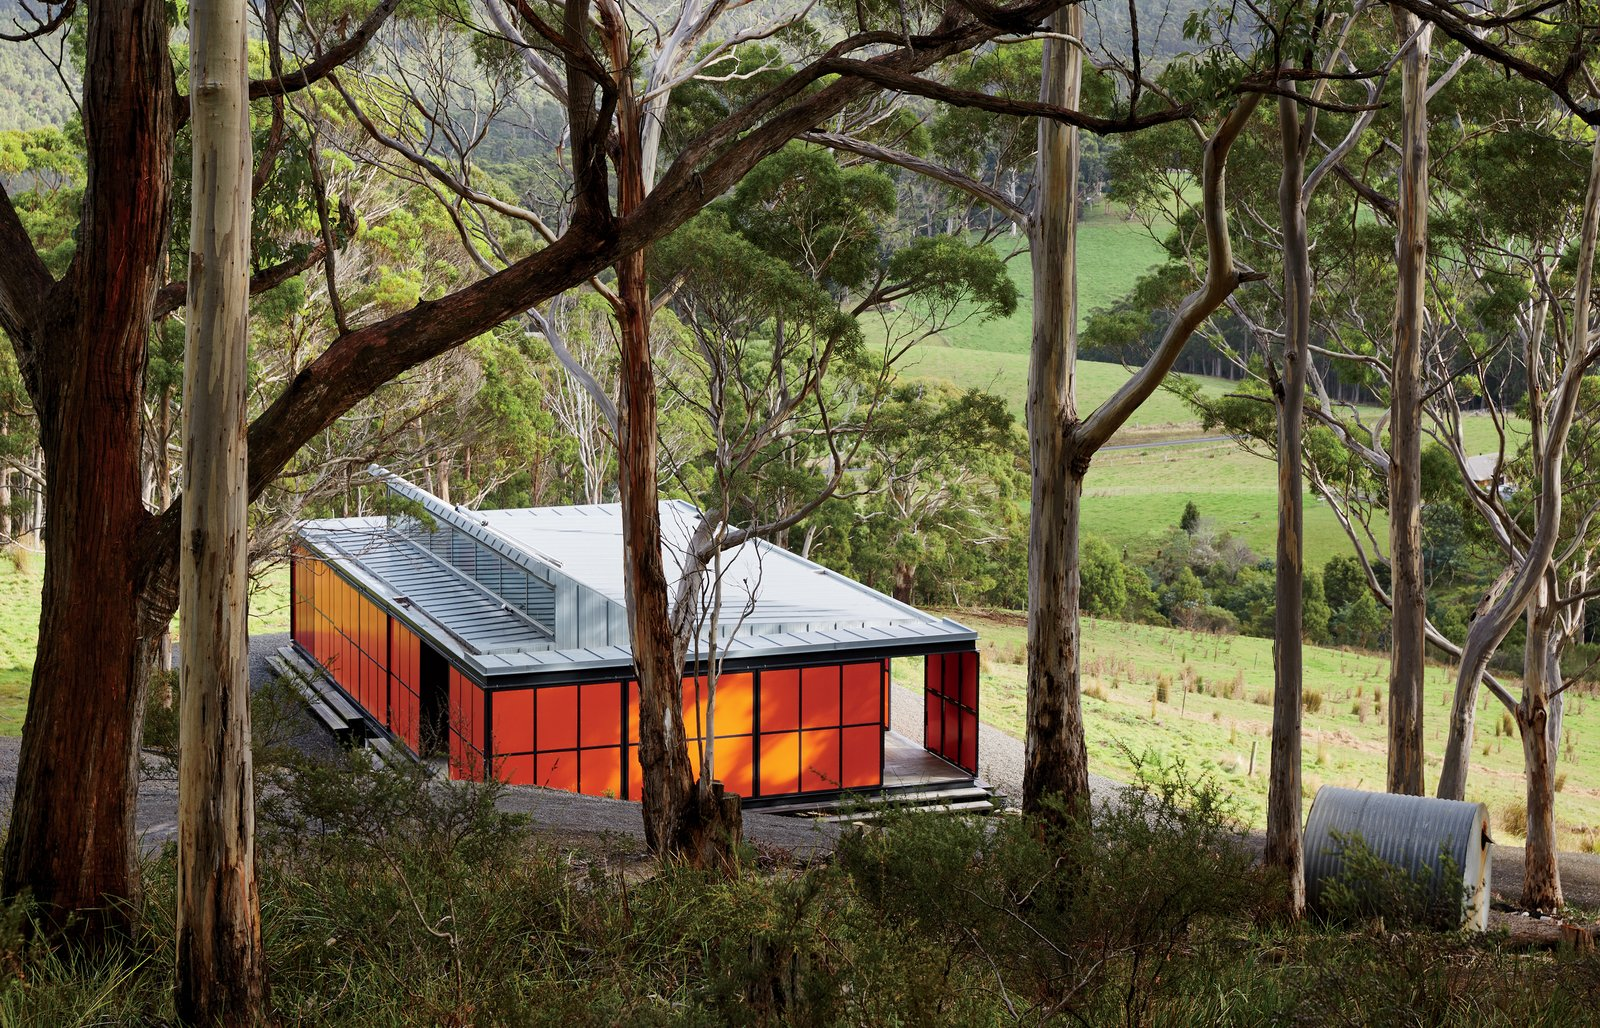 Upon his first visit to Tasmania, an island south of the Australian mainland, resident David Burns was immediately smitten with its varied, pristine landscape. Working with architecture firm Misho+Associates, he built a self-sustaining, 818-square-foot retreat that would allow him to completely unplug from urban life. Tagged: Exterior and House. 16+ Prefab Homes in the Middle of Nowhere by Luke Hopping